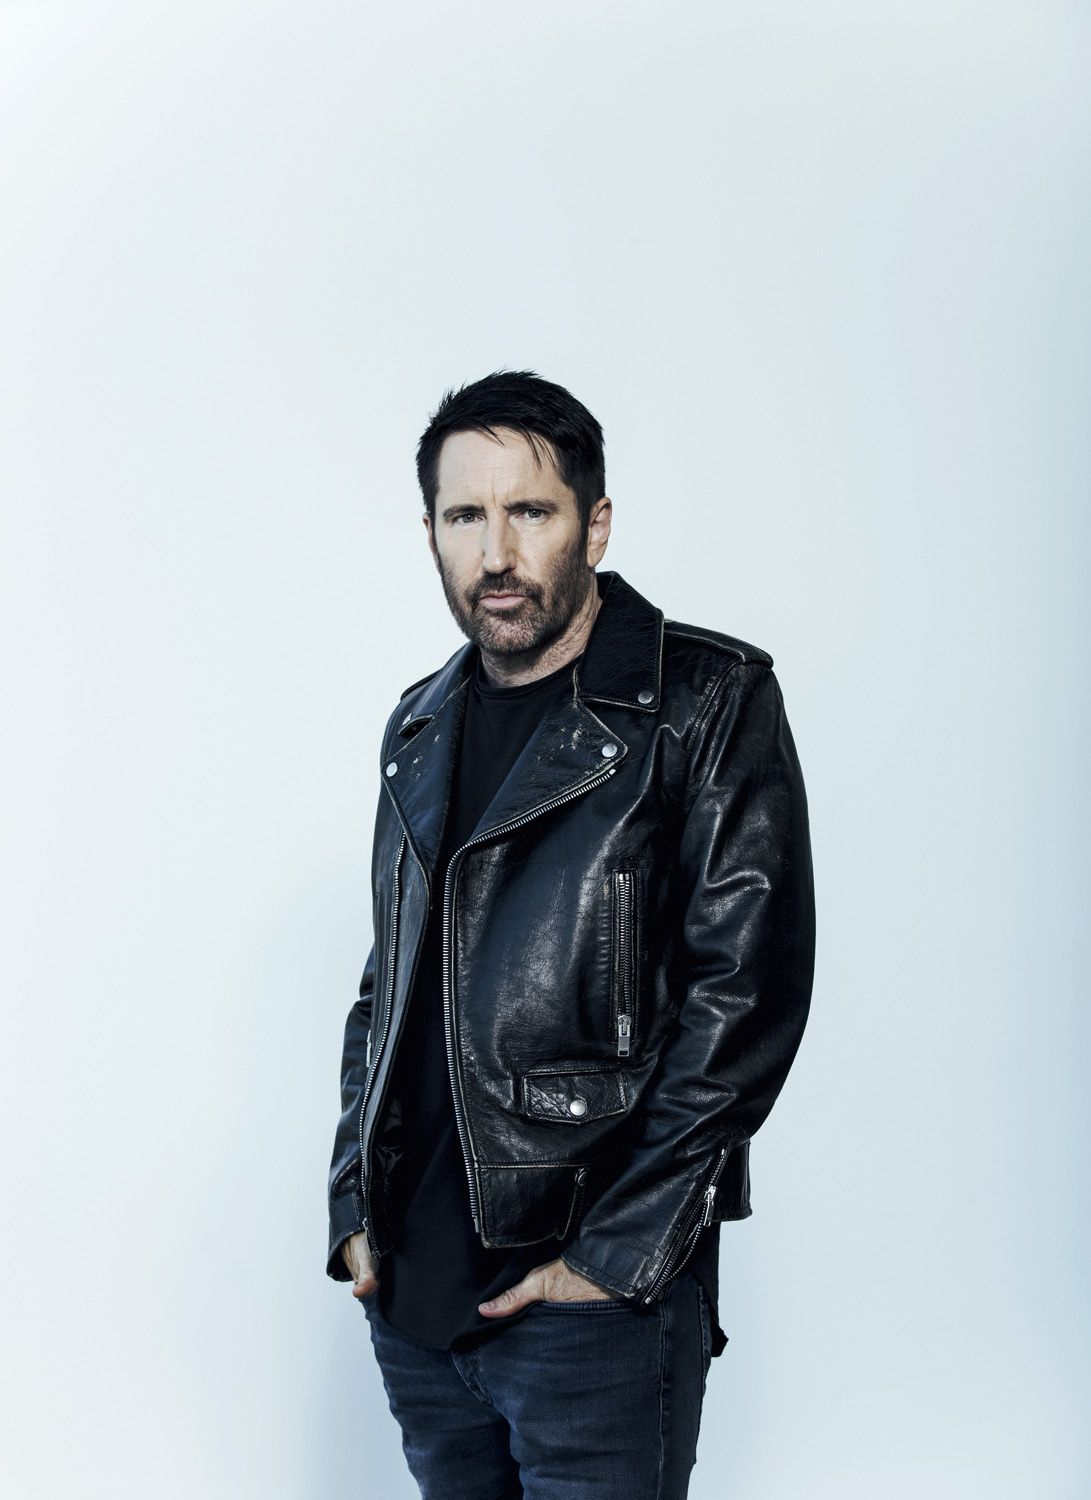 Trent Reznor Nine Inch Nails In 2018 Pinterest Sweater Nin Music Bands Artists Musica